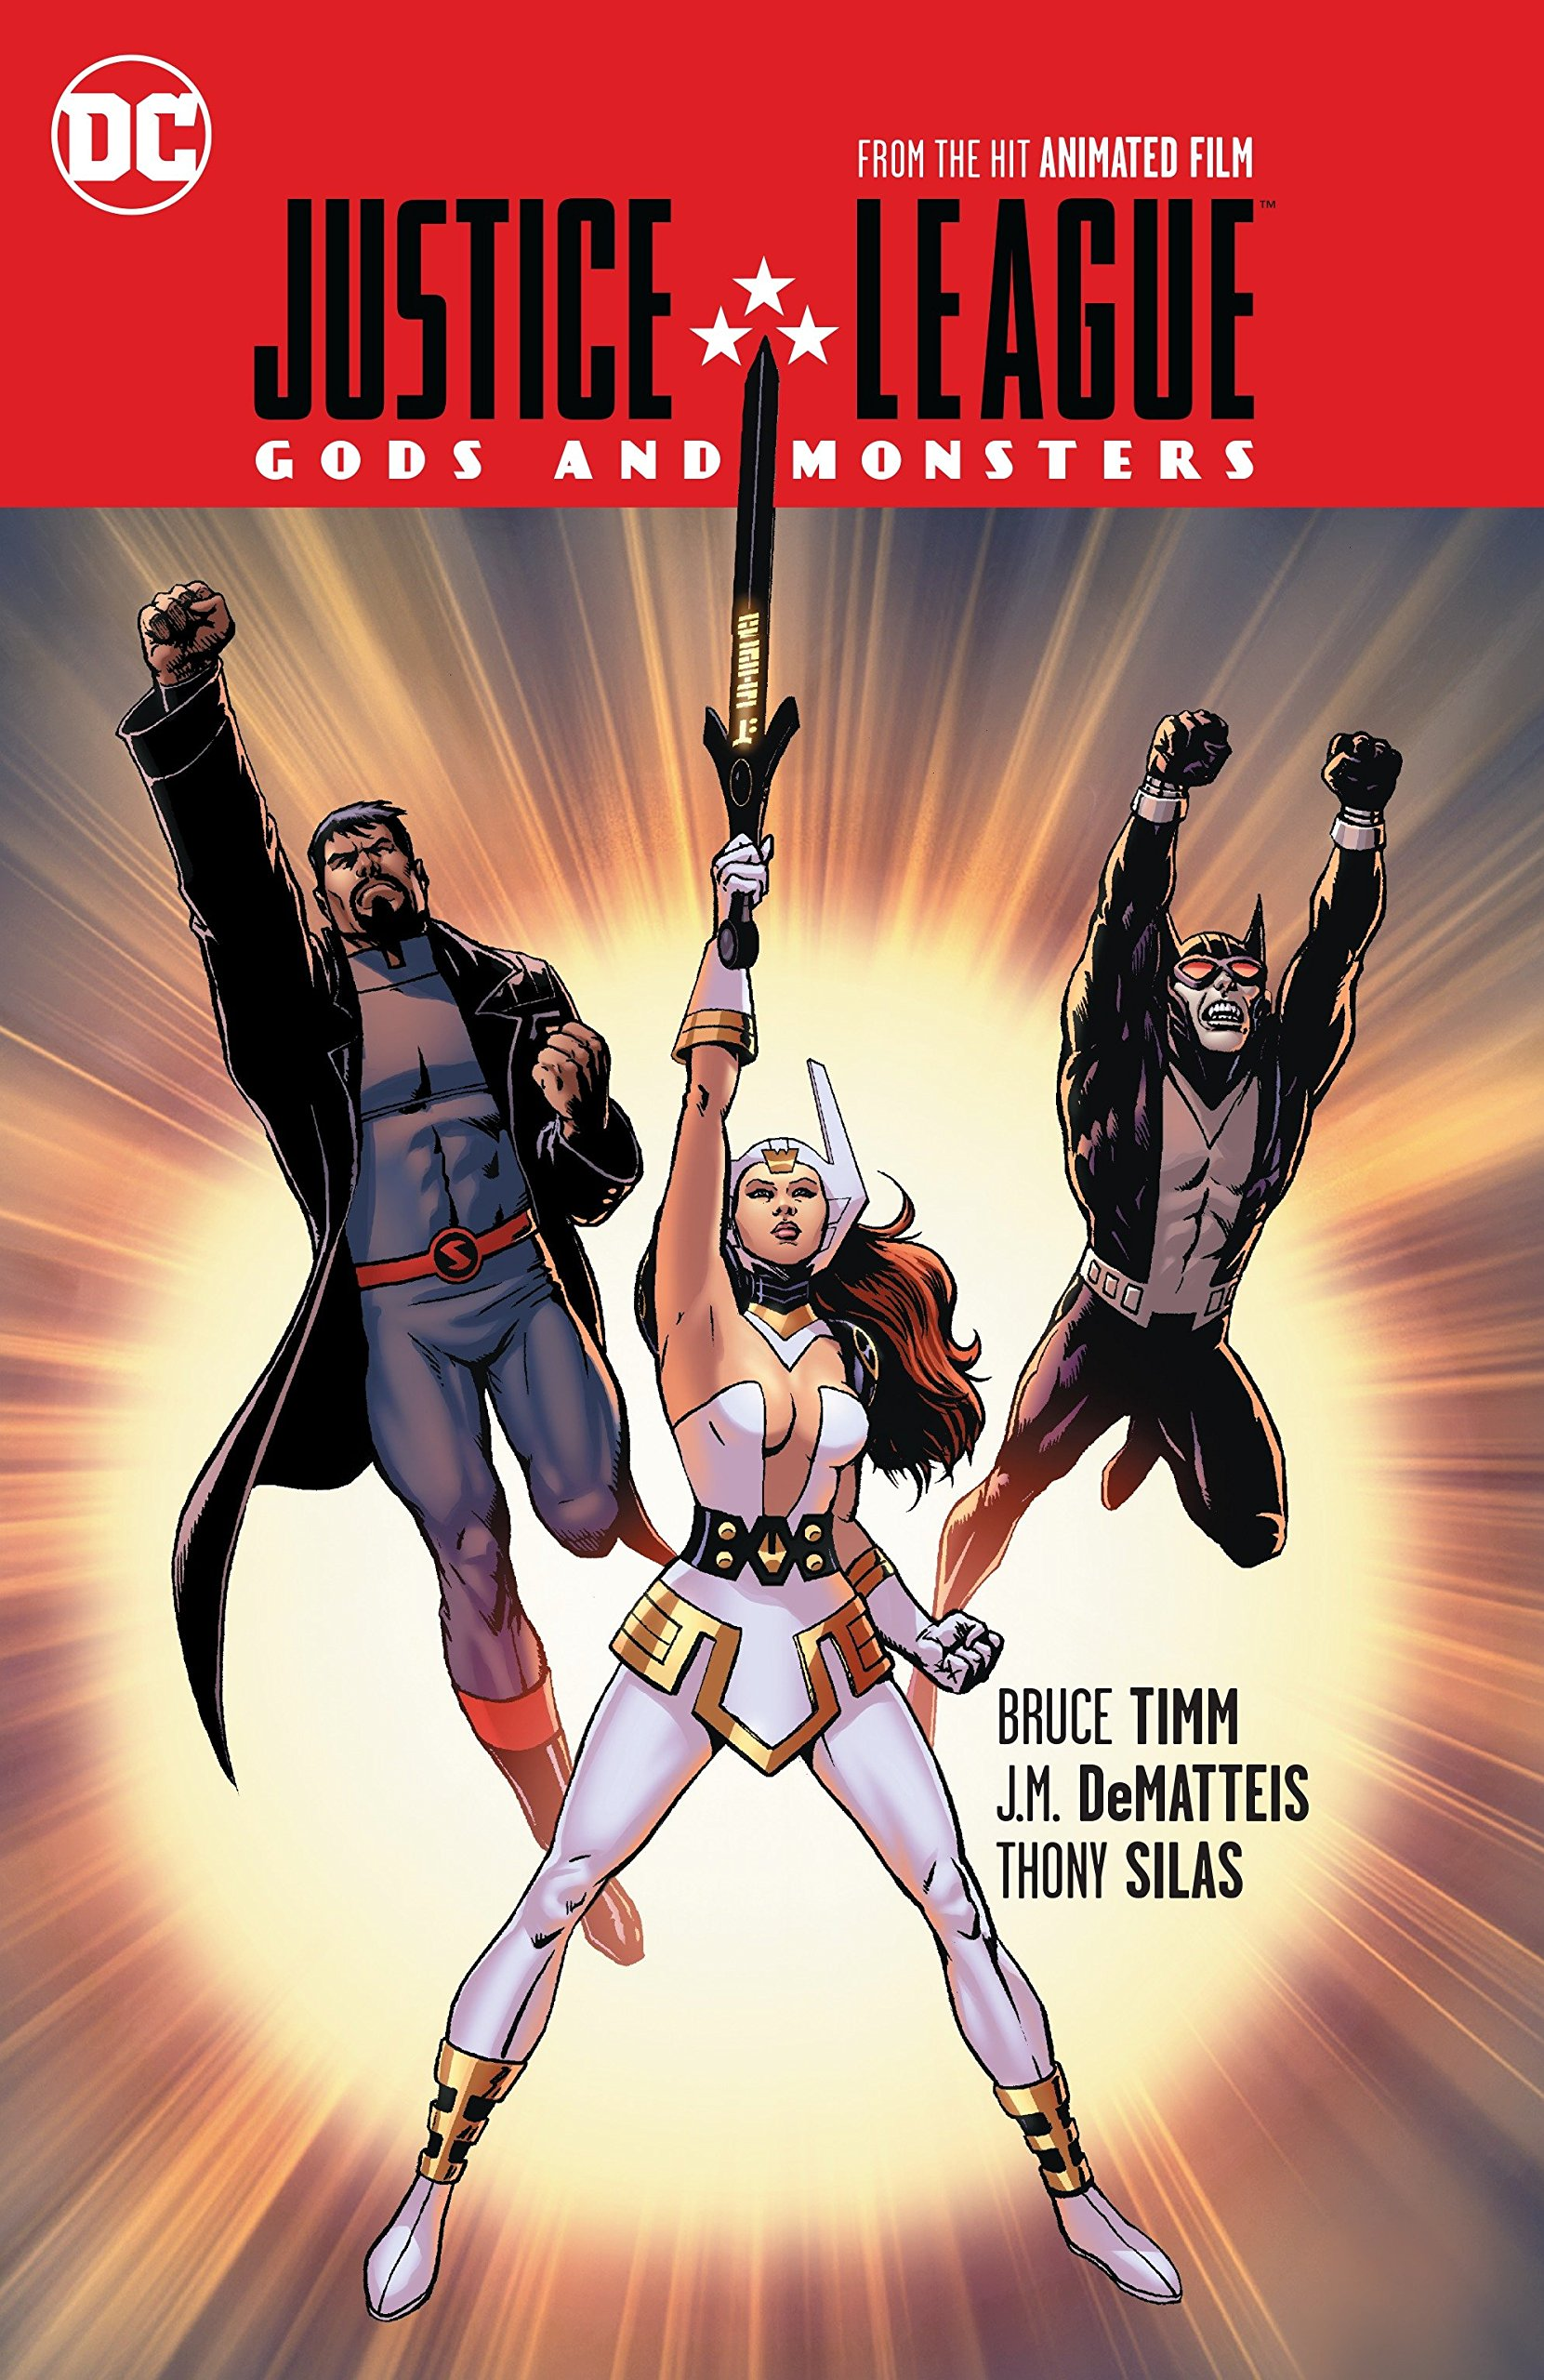 دانلود justice league gods and monsters